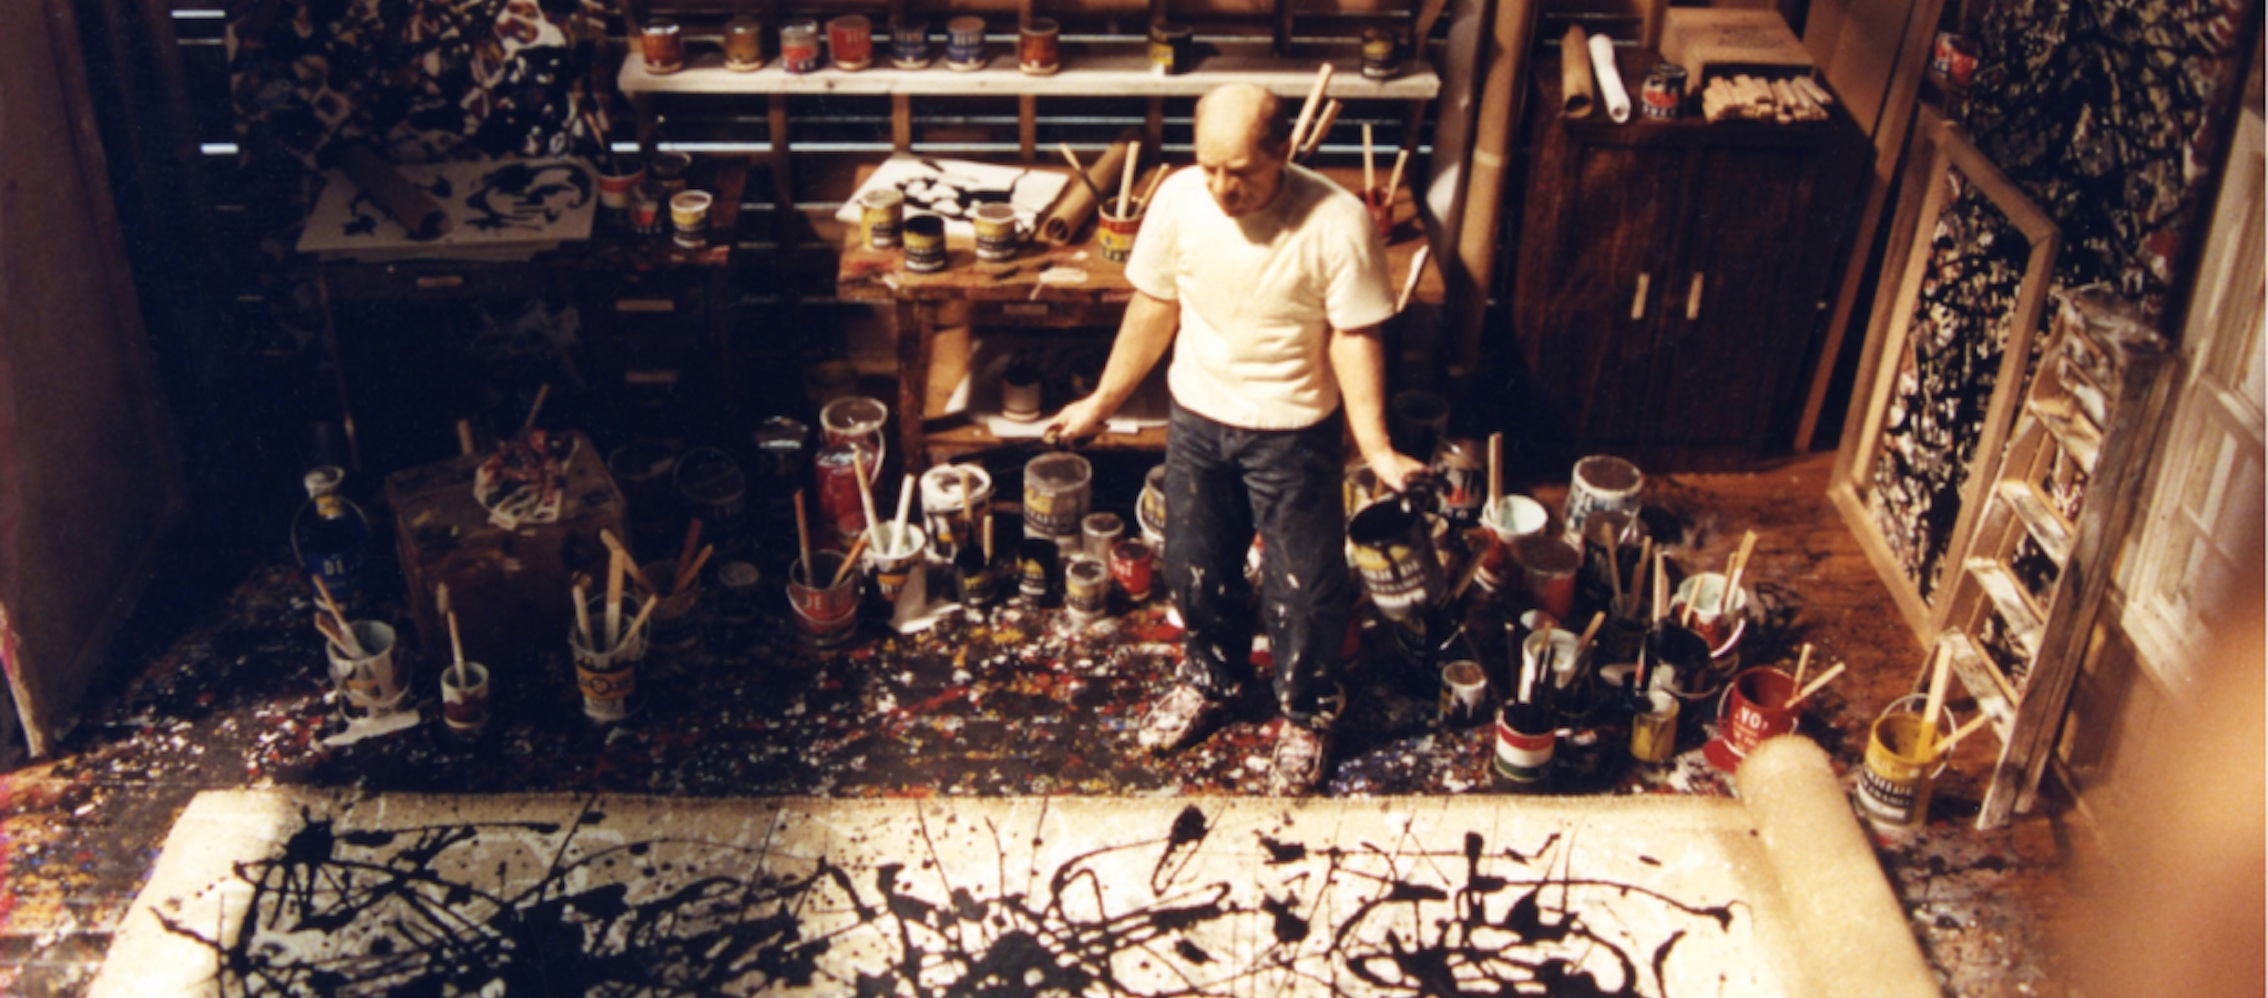 joe-fig-jackson-pollock-studio-1023